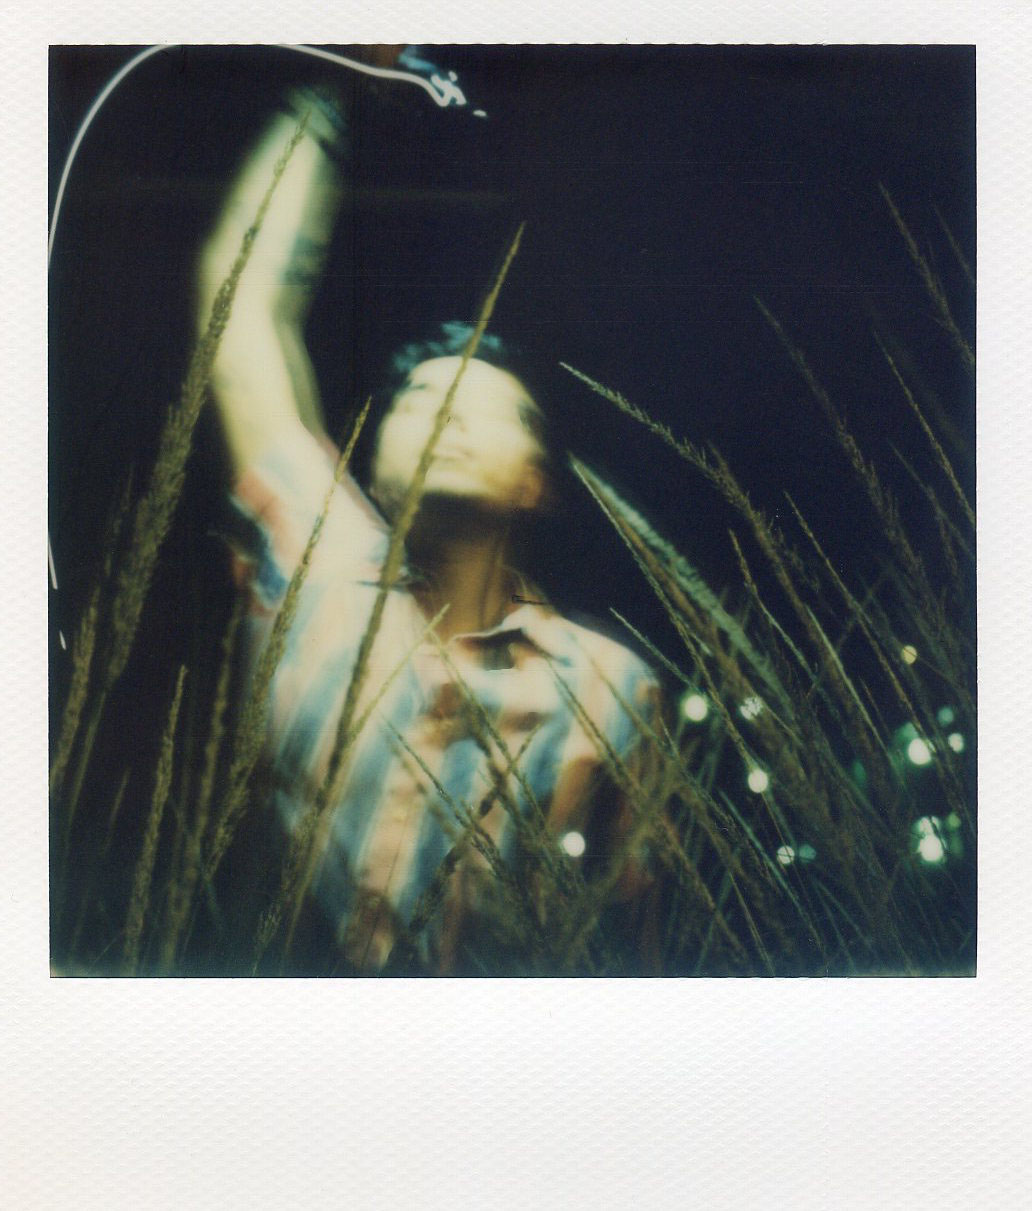 On Growing Like Weeds | Christian Quezada | SX-70 | Impossible Film